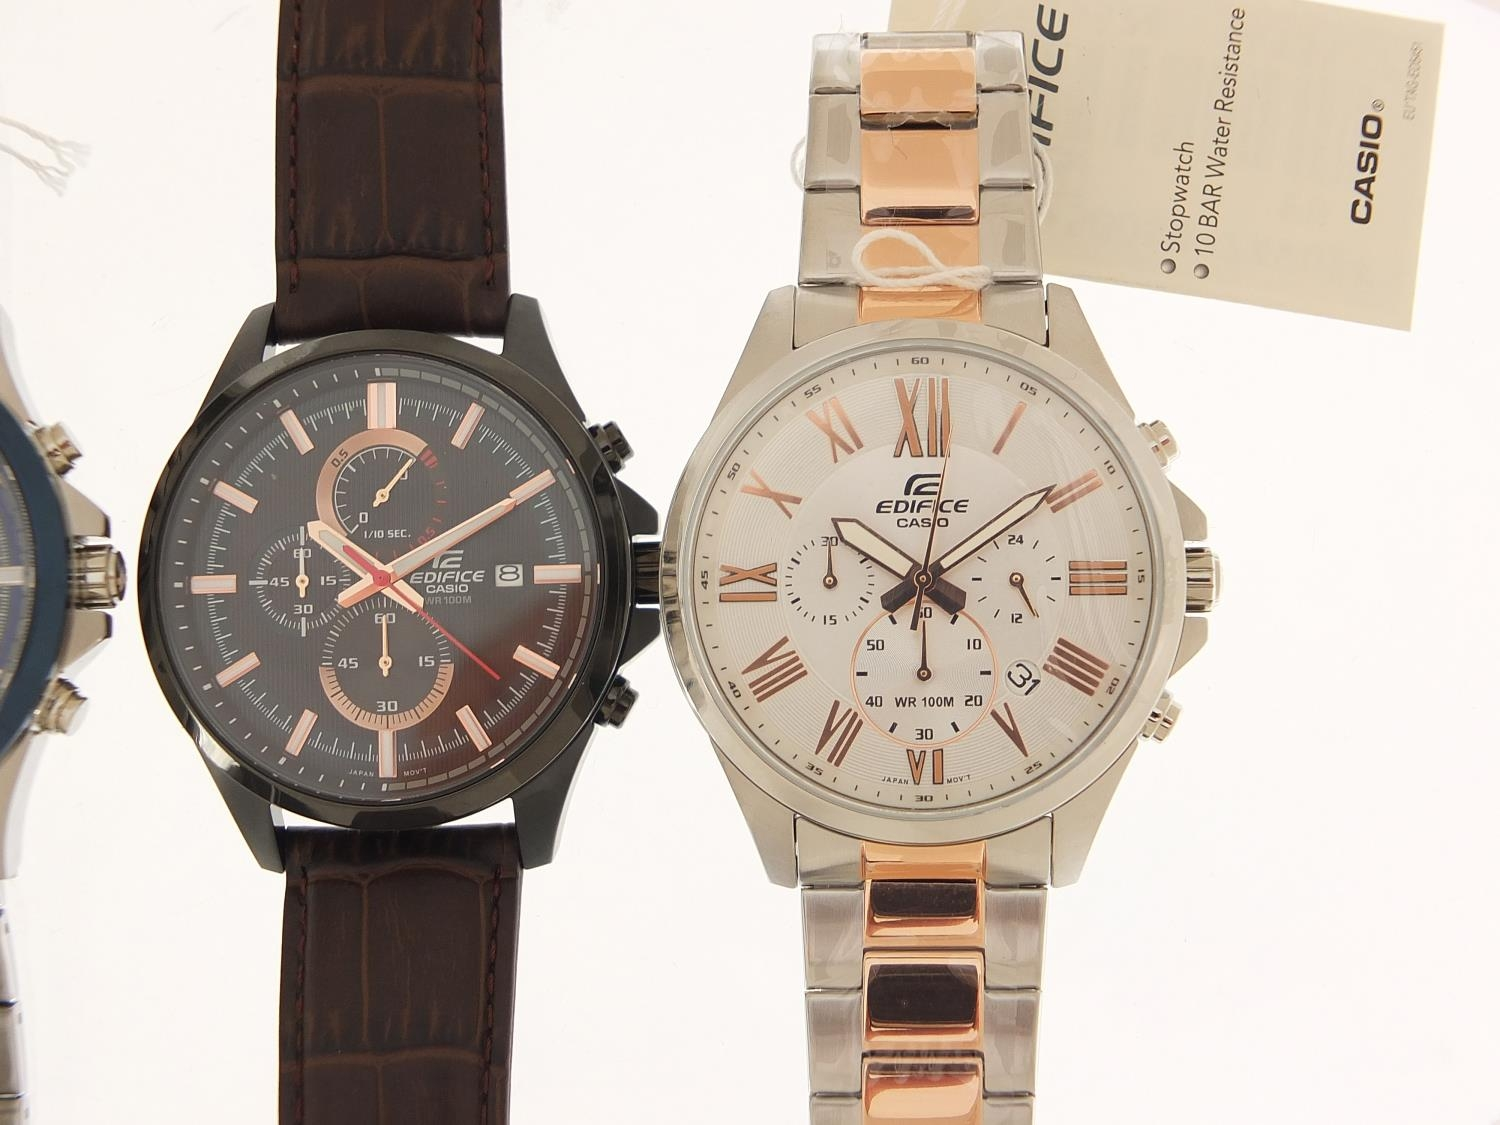 Casio Edifice, three gentlemen's wristwatches with boxes numbered 76E2AU, 776KM0 and 881CK2 :For - Image 3 of 8